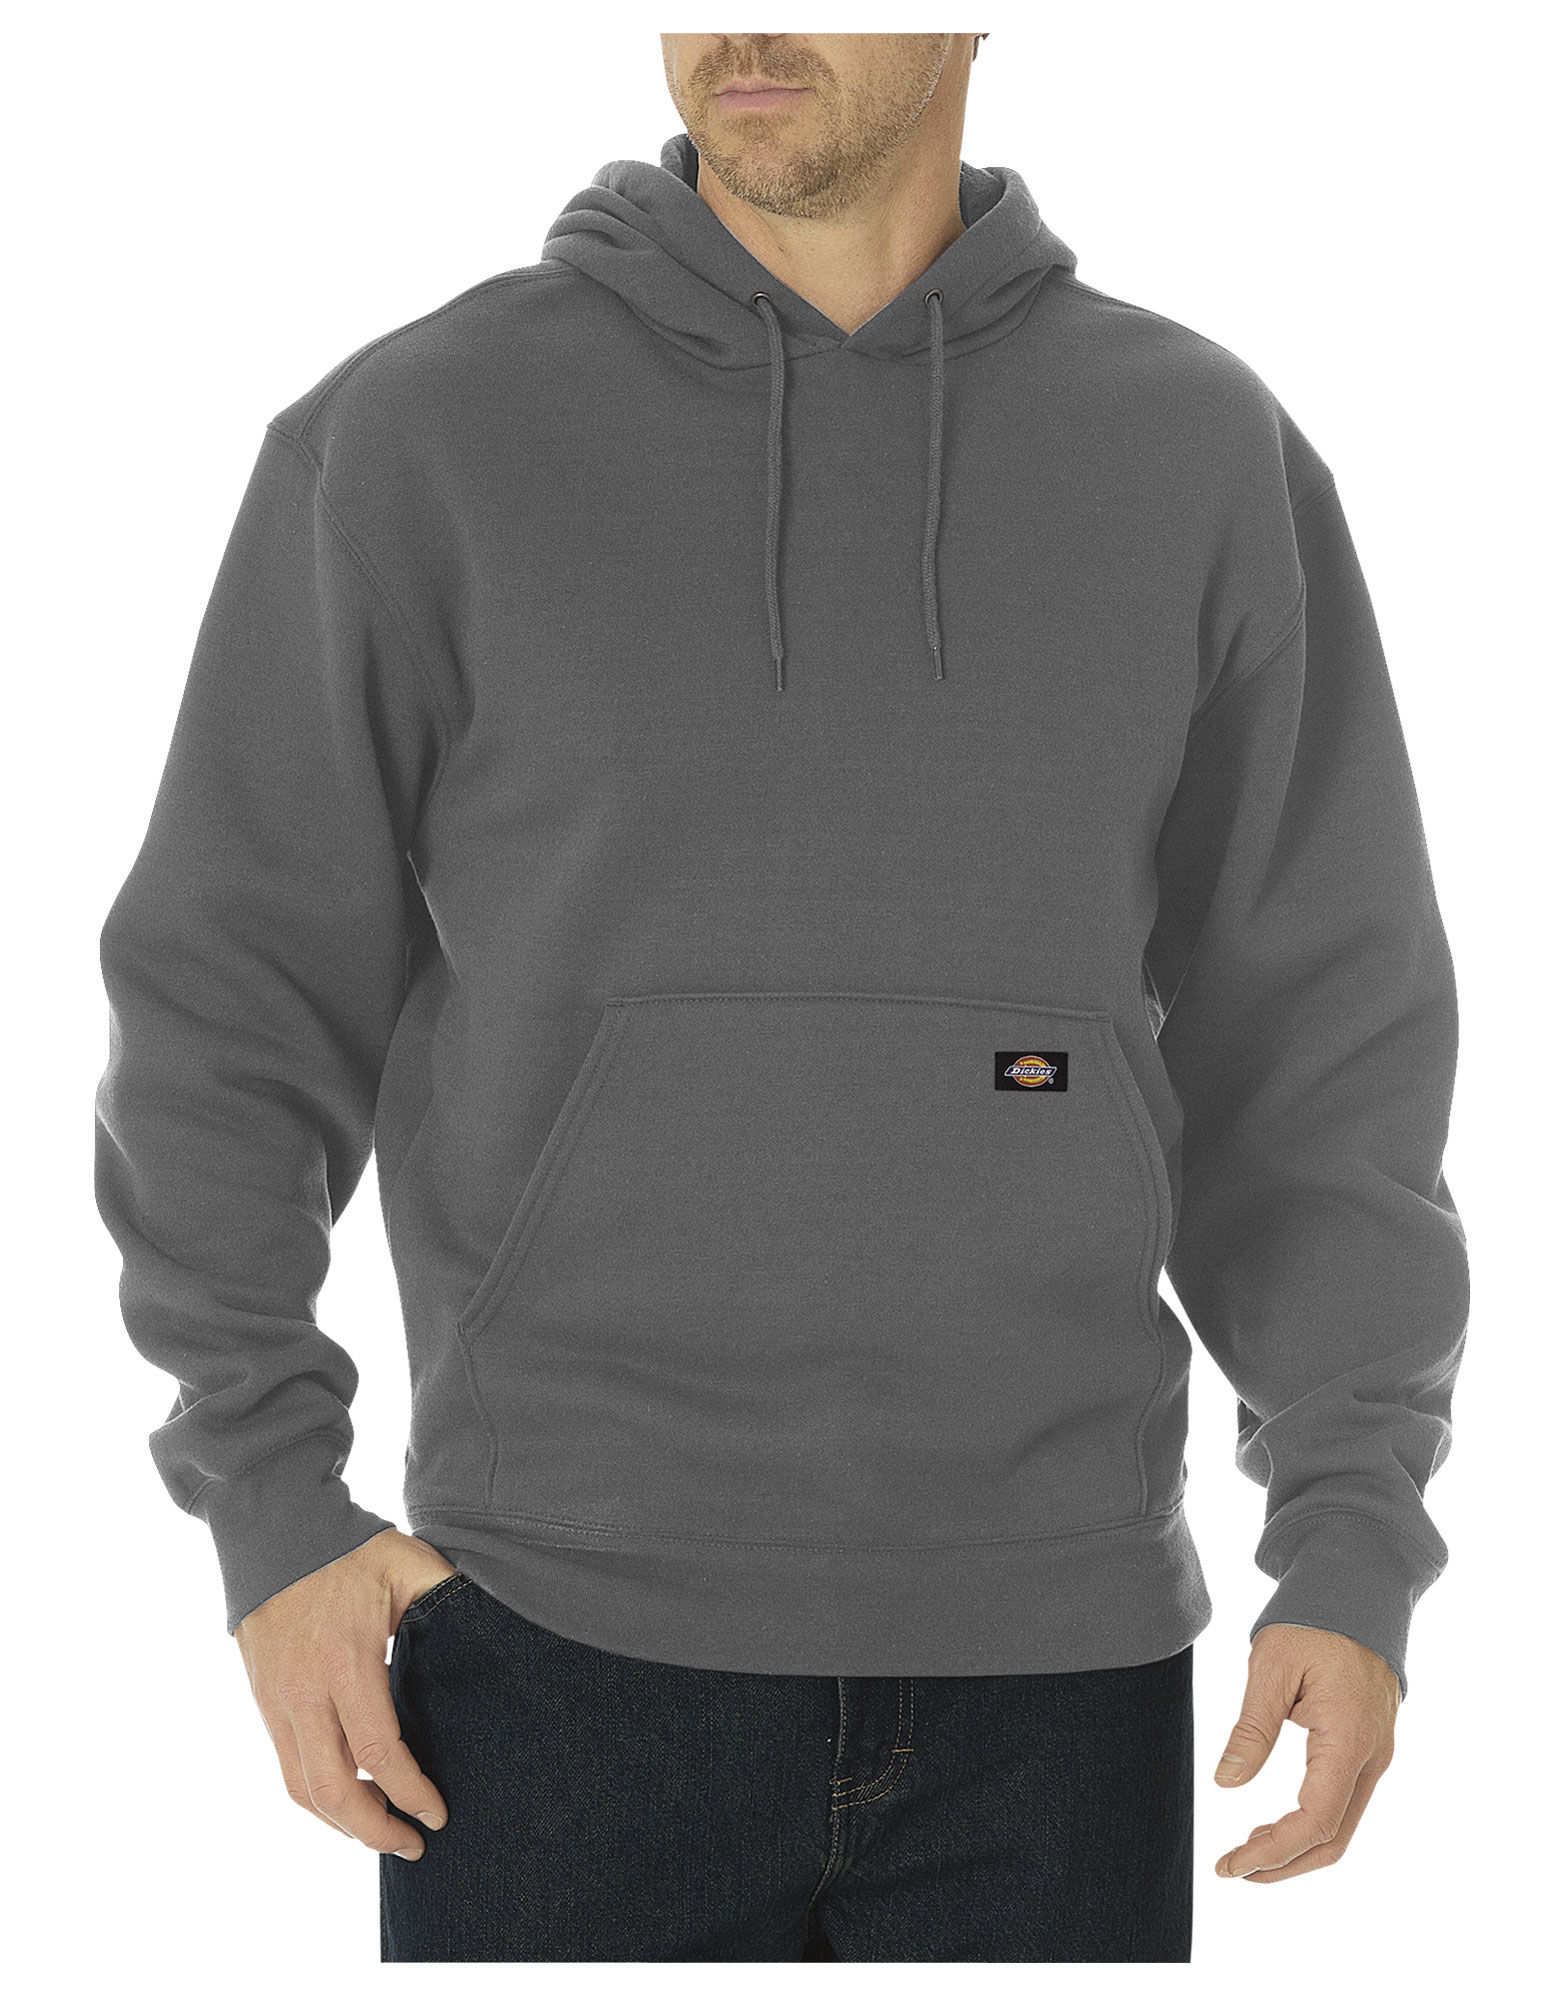 Big & Tall Men's Midweight Fleece Pullover Hoodie